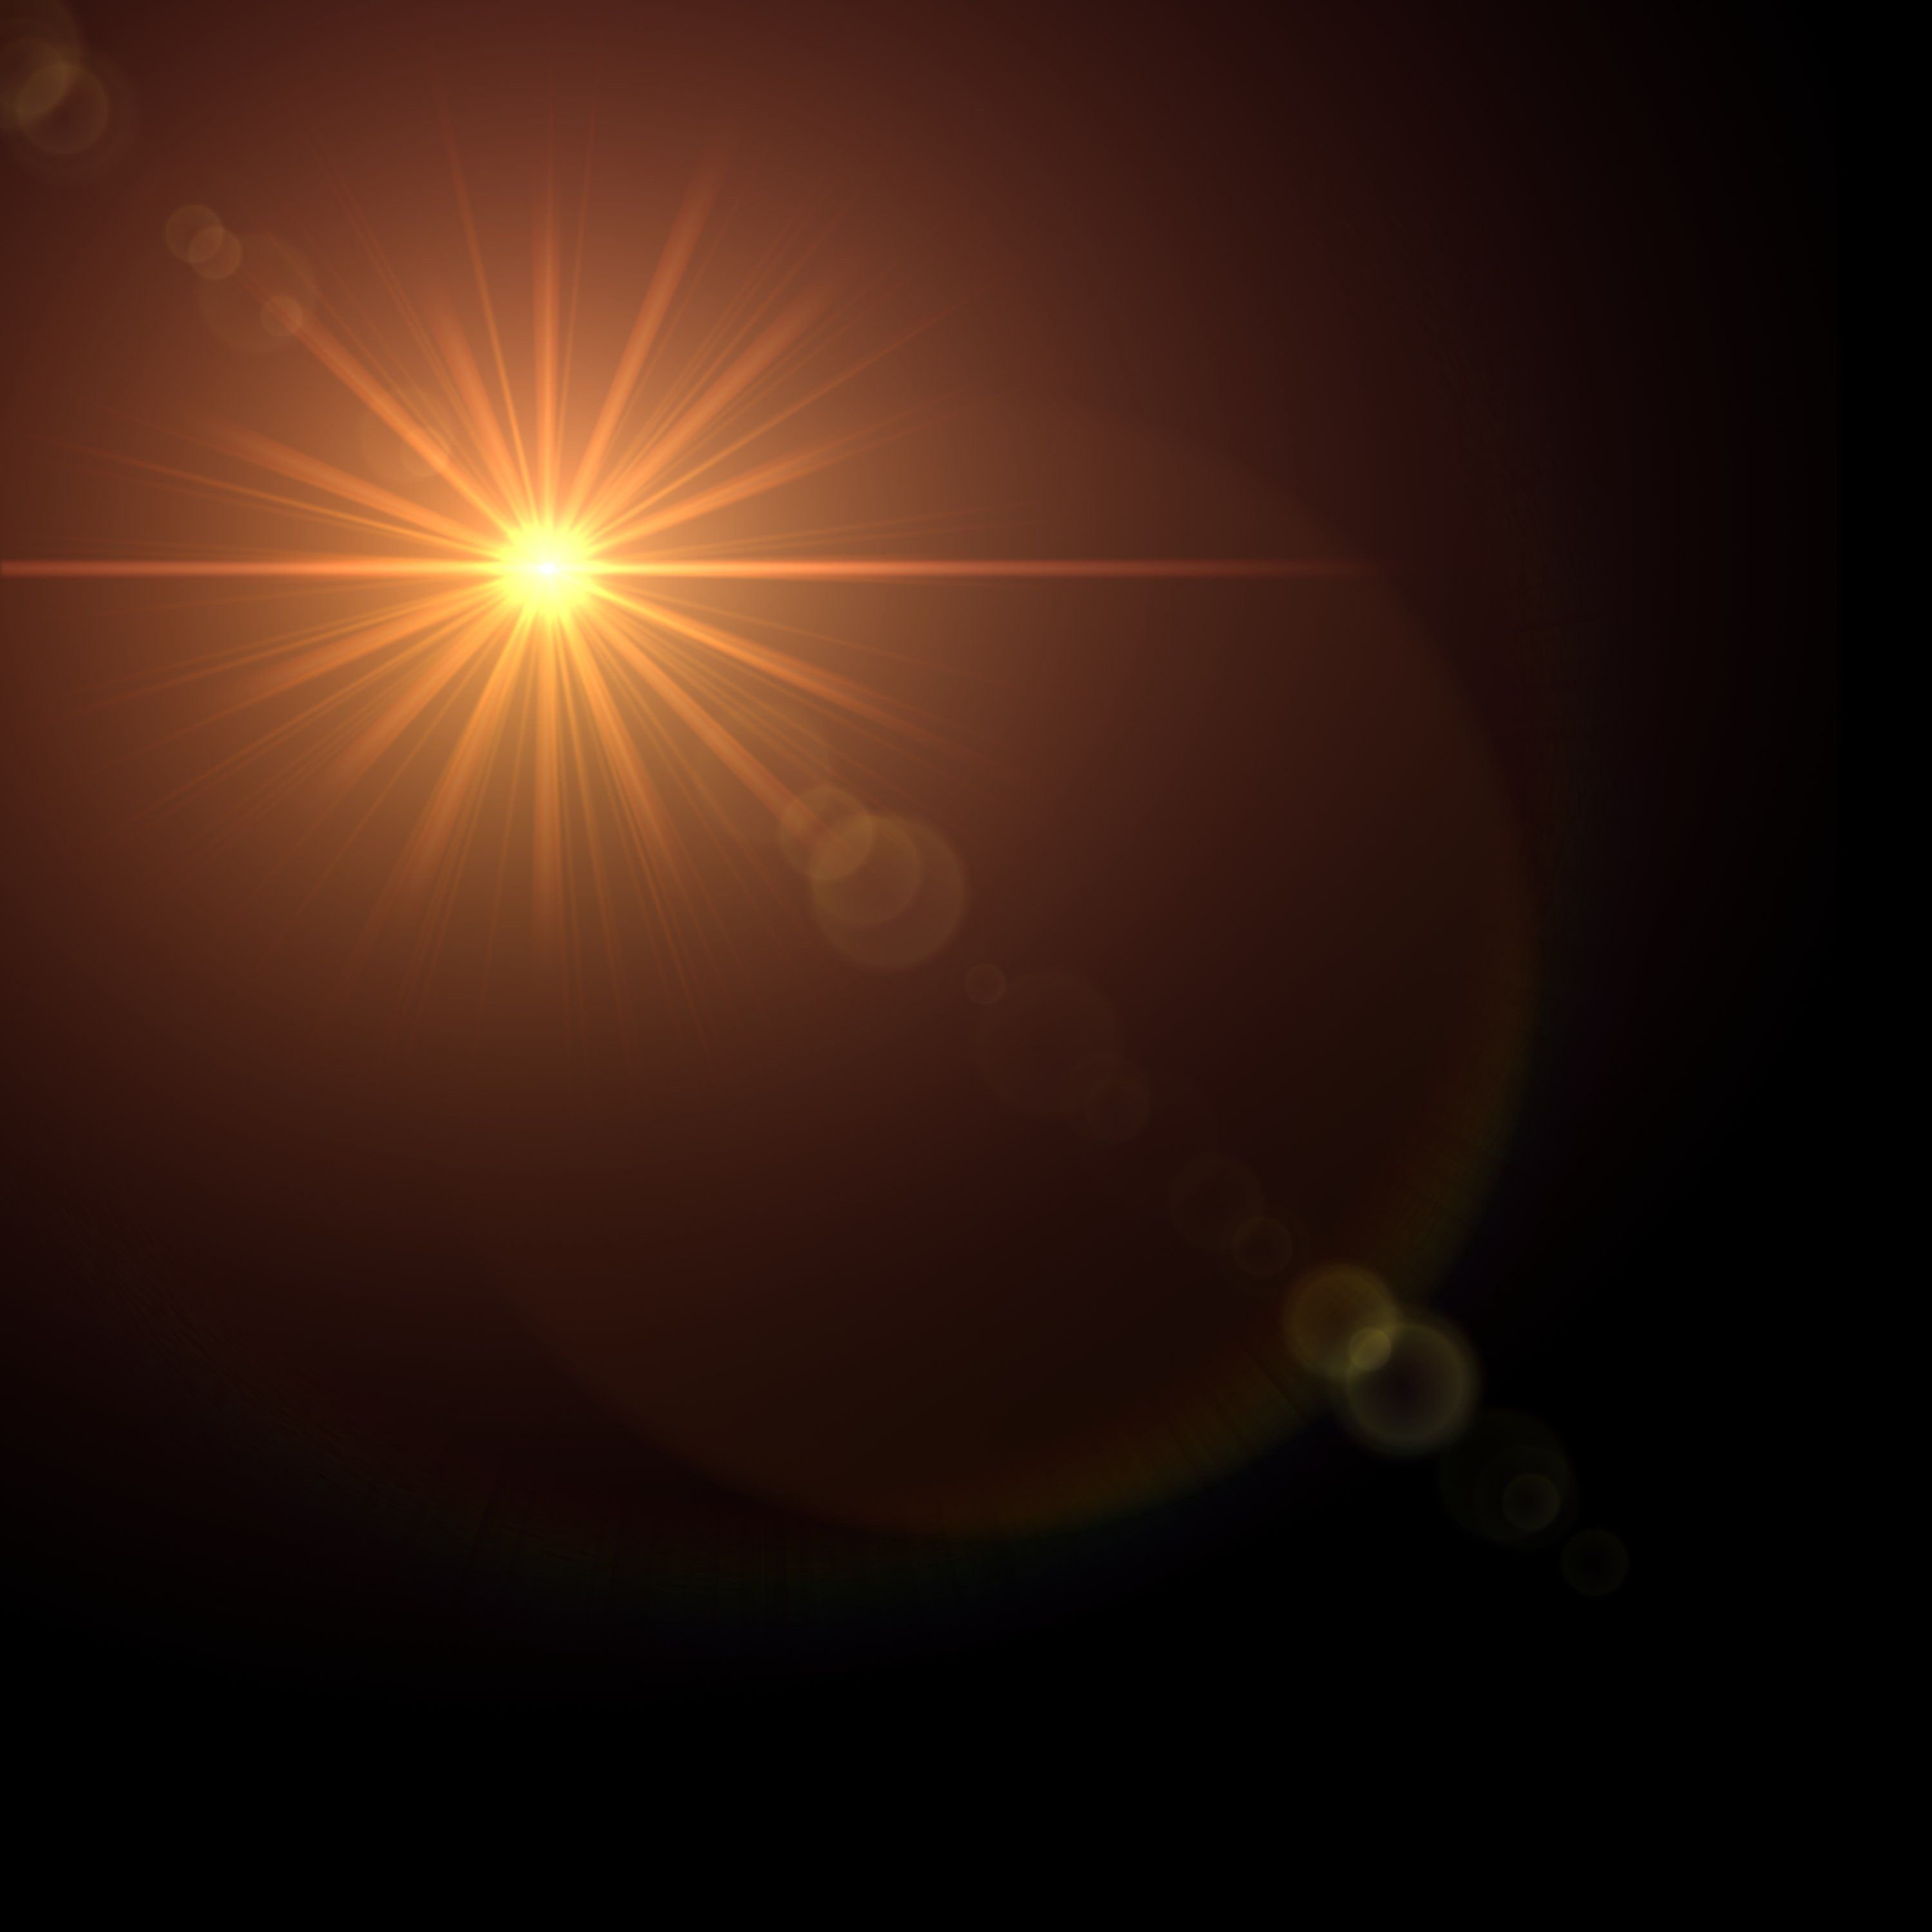 Light Flare Effects Volume 2 In 2020 Light Background Images Dslr Background Images Light Flare